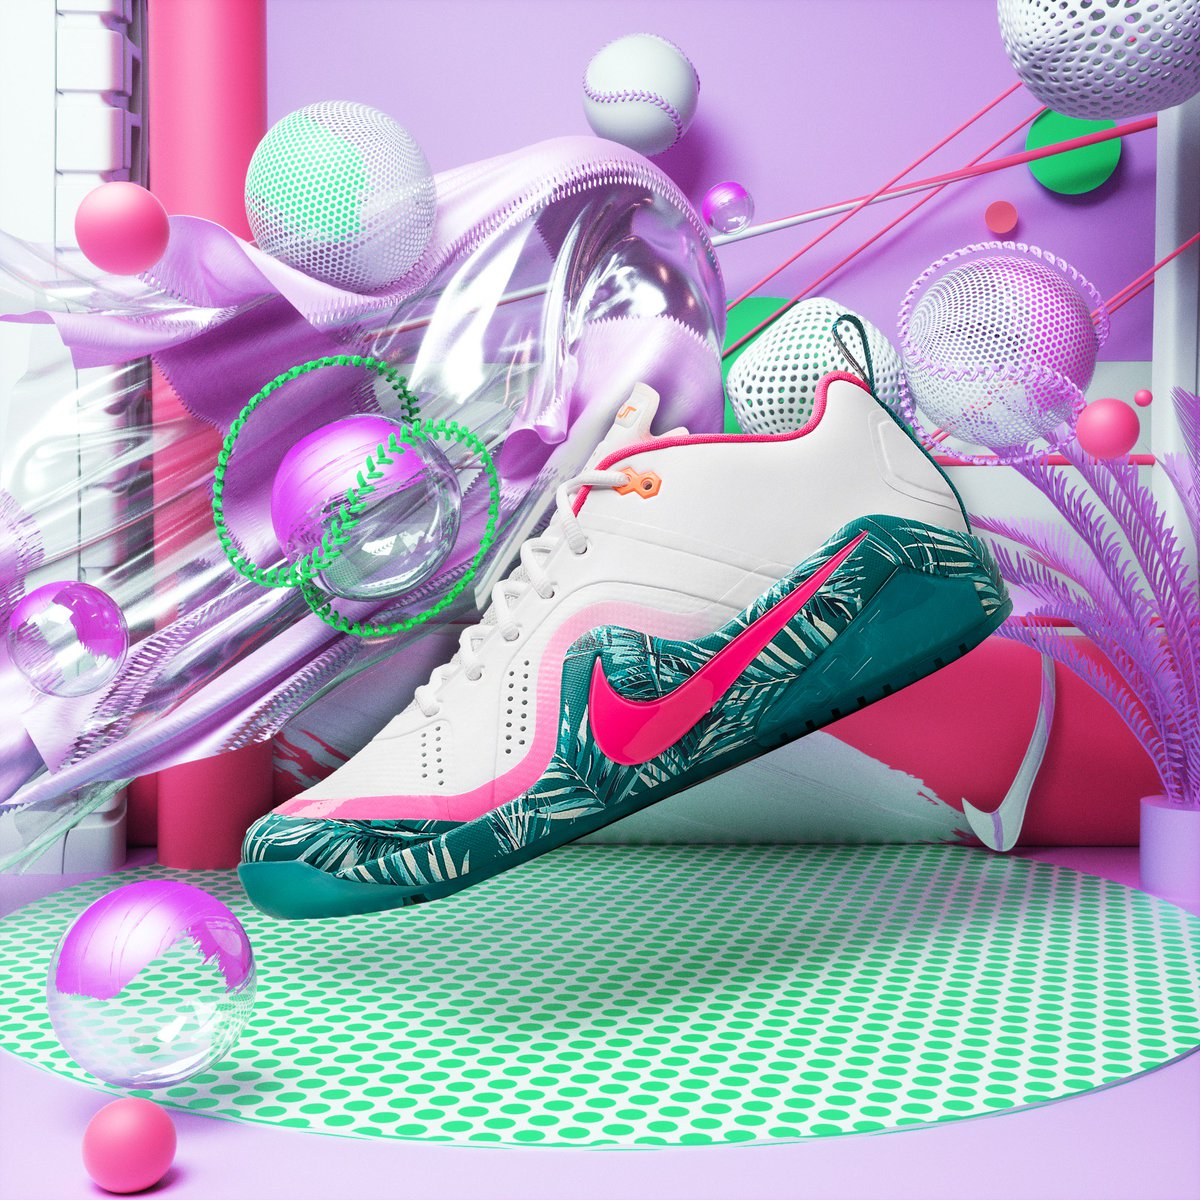 6471bcf653d Nike Force Zoom Trout 4 turf trainers and cleats from the Miami Nights  Collection  TEAMNIKE  NikeBaseball… https   t.co geBDJtIkGZ